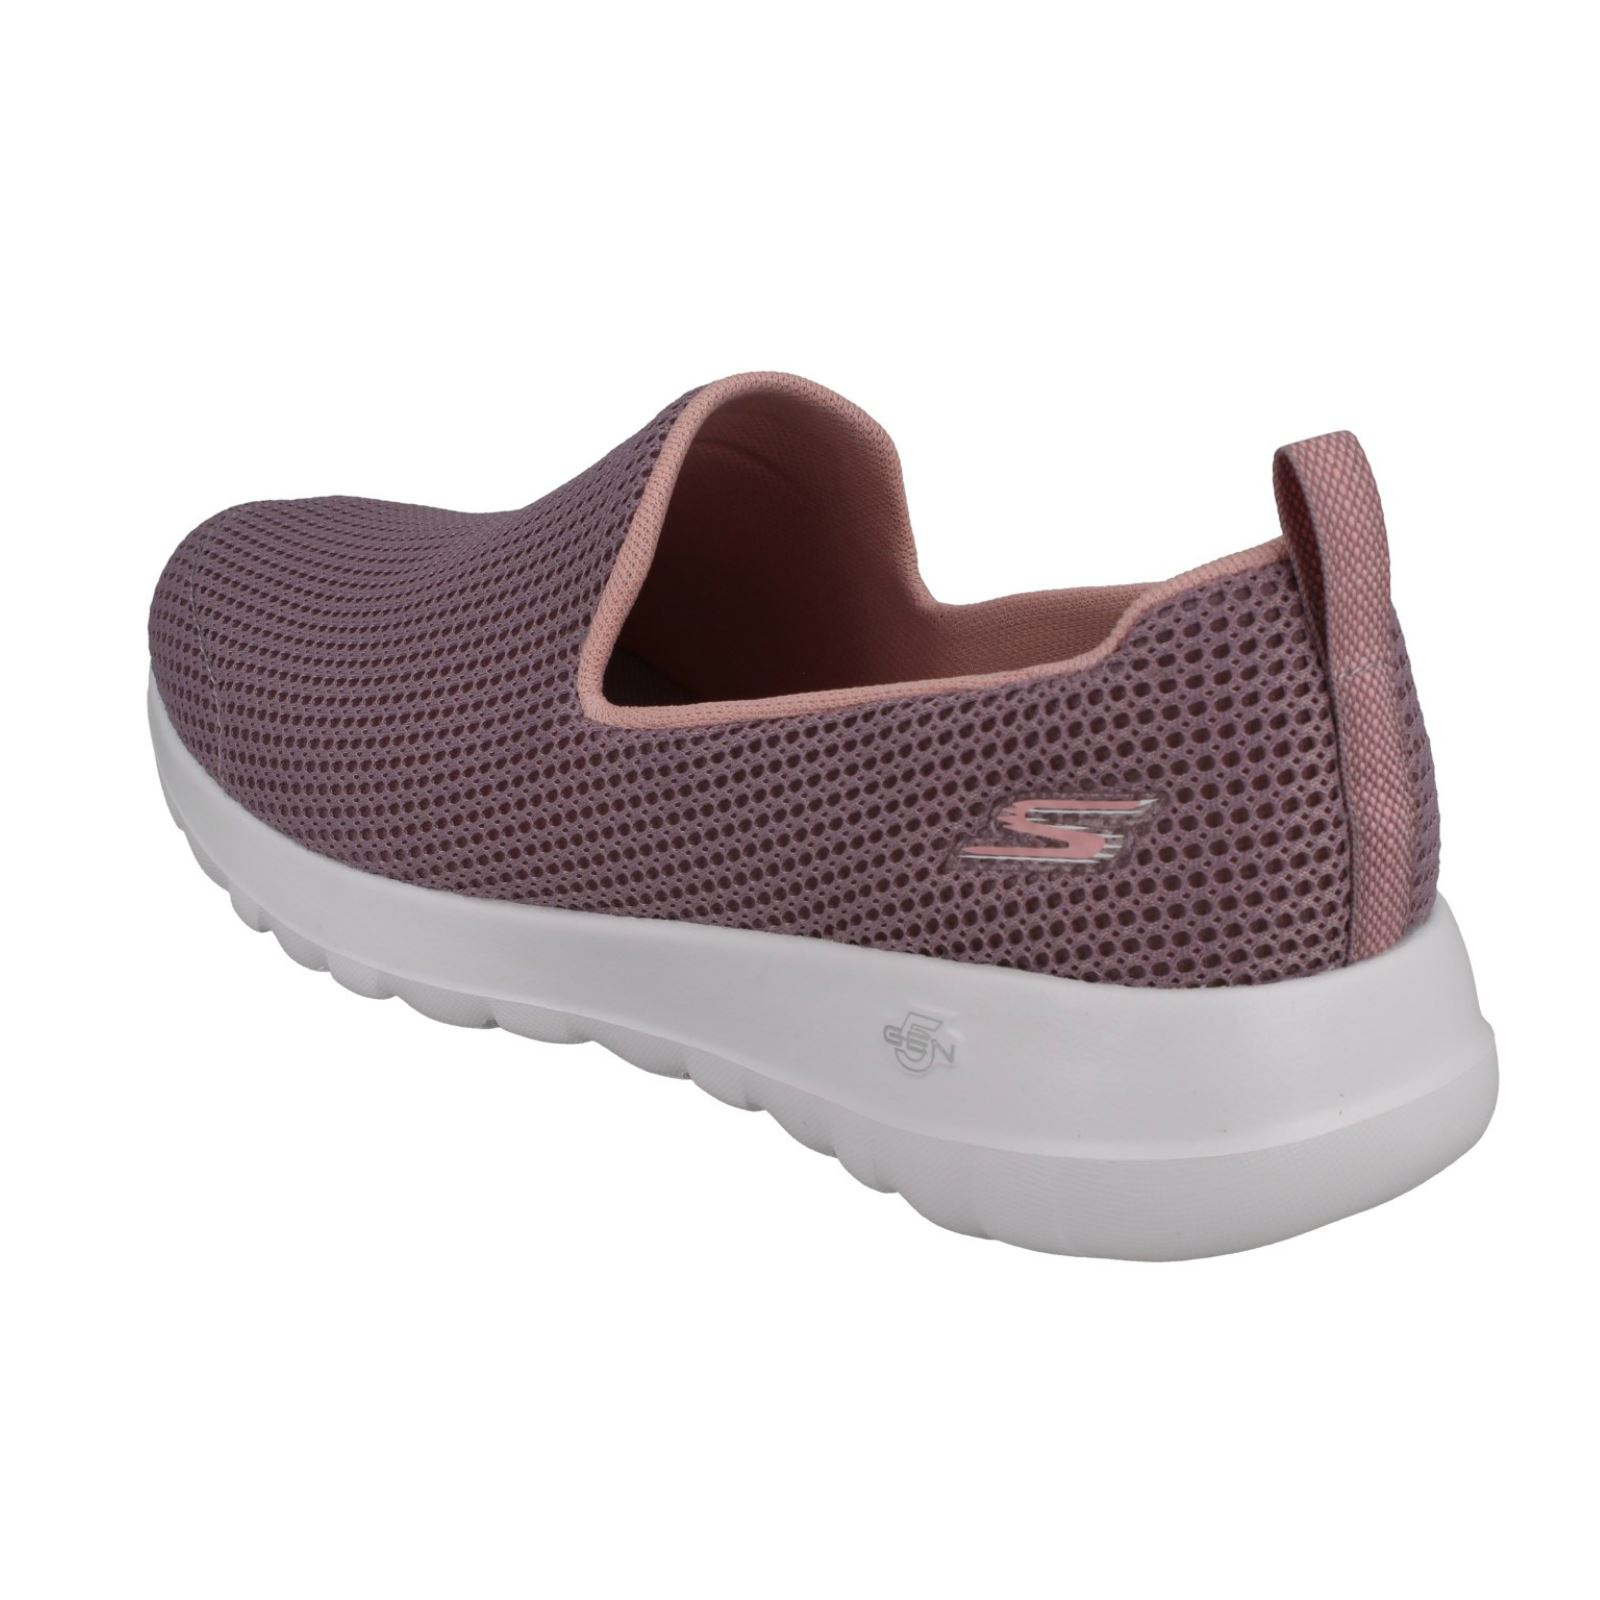 Mauve purple Go centerpiece Skechers Shoes By Casual Ladies Walk Z7wSqPa